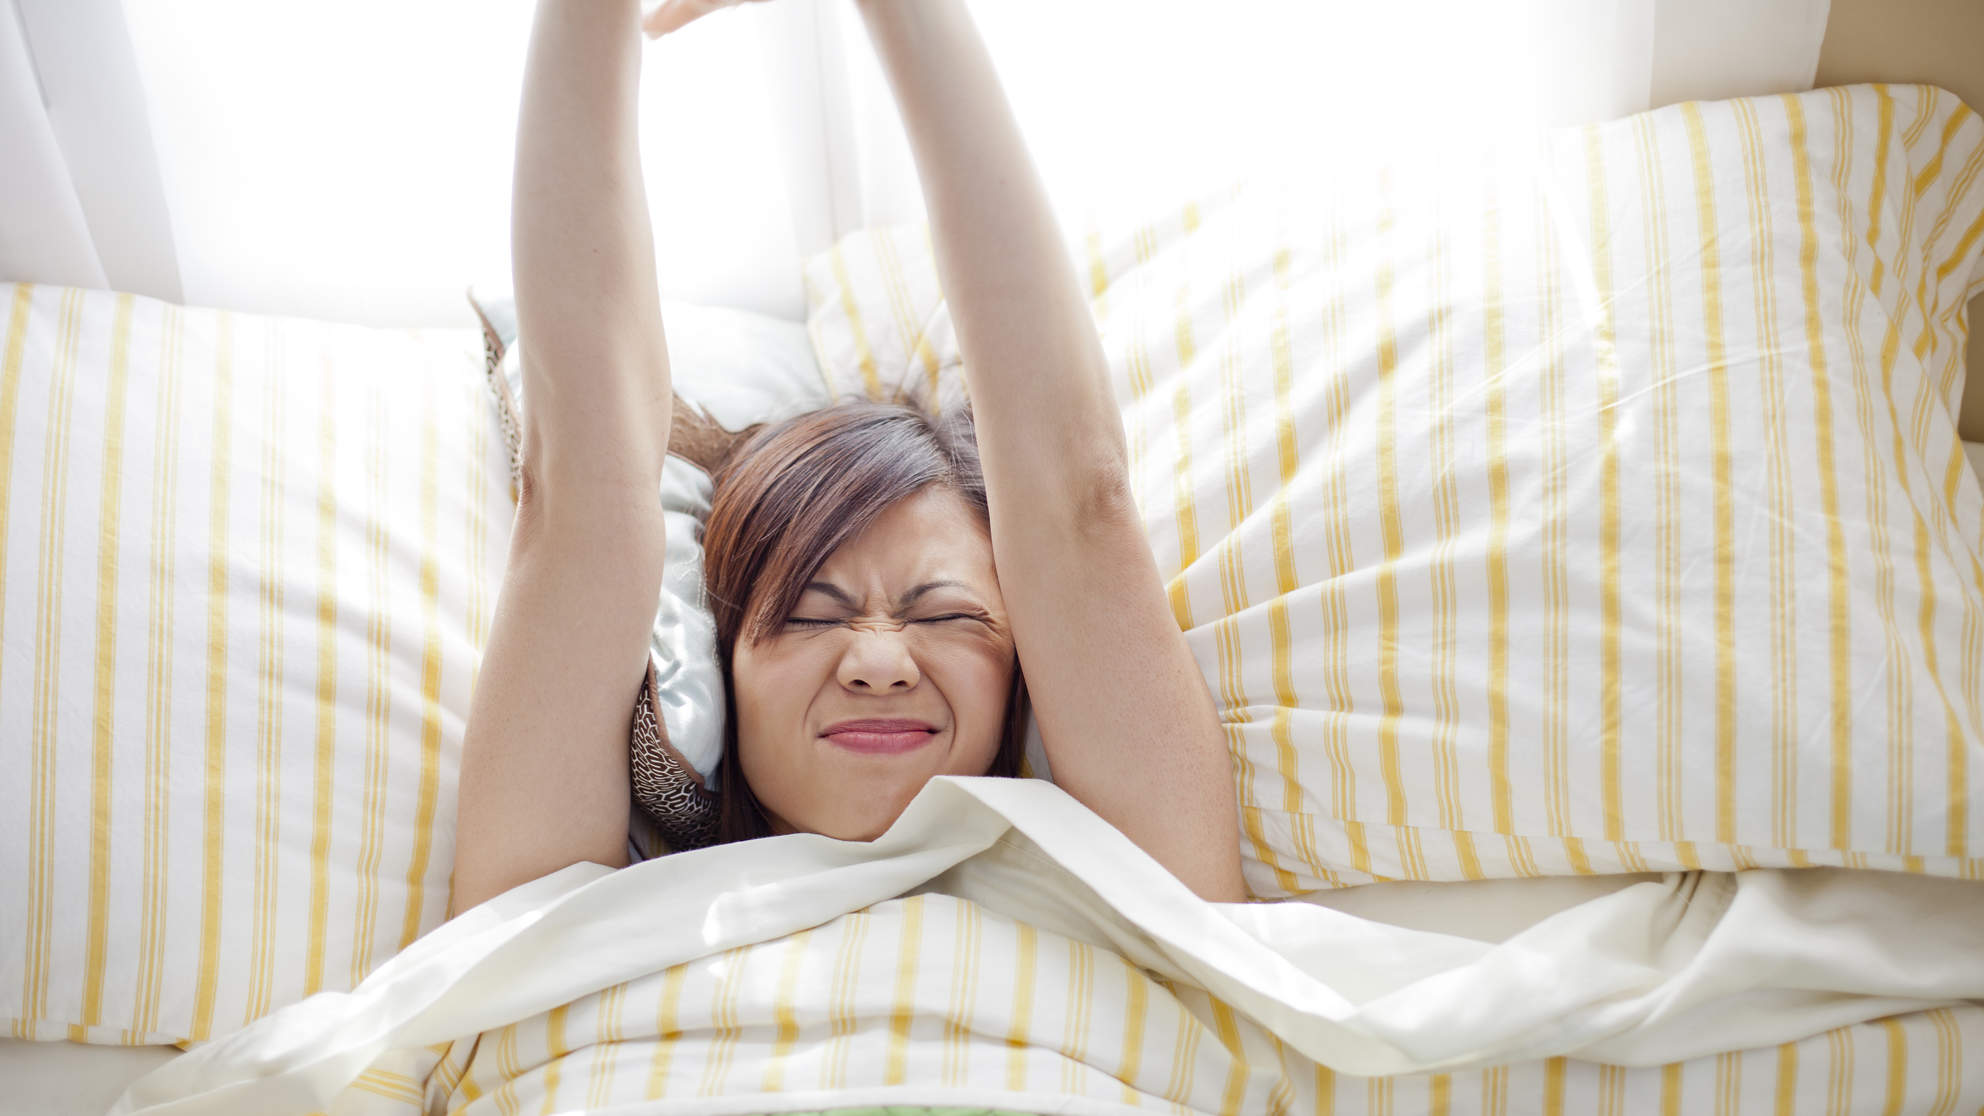 The Reason You Feel Stiff When You Wake Up—and How to Avoid It